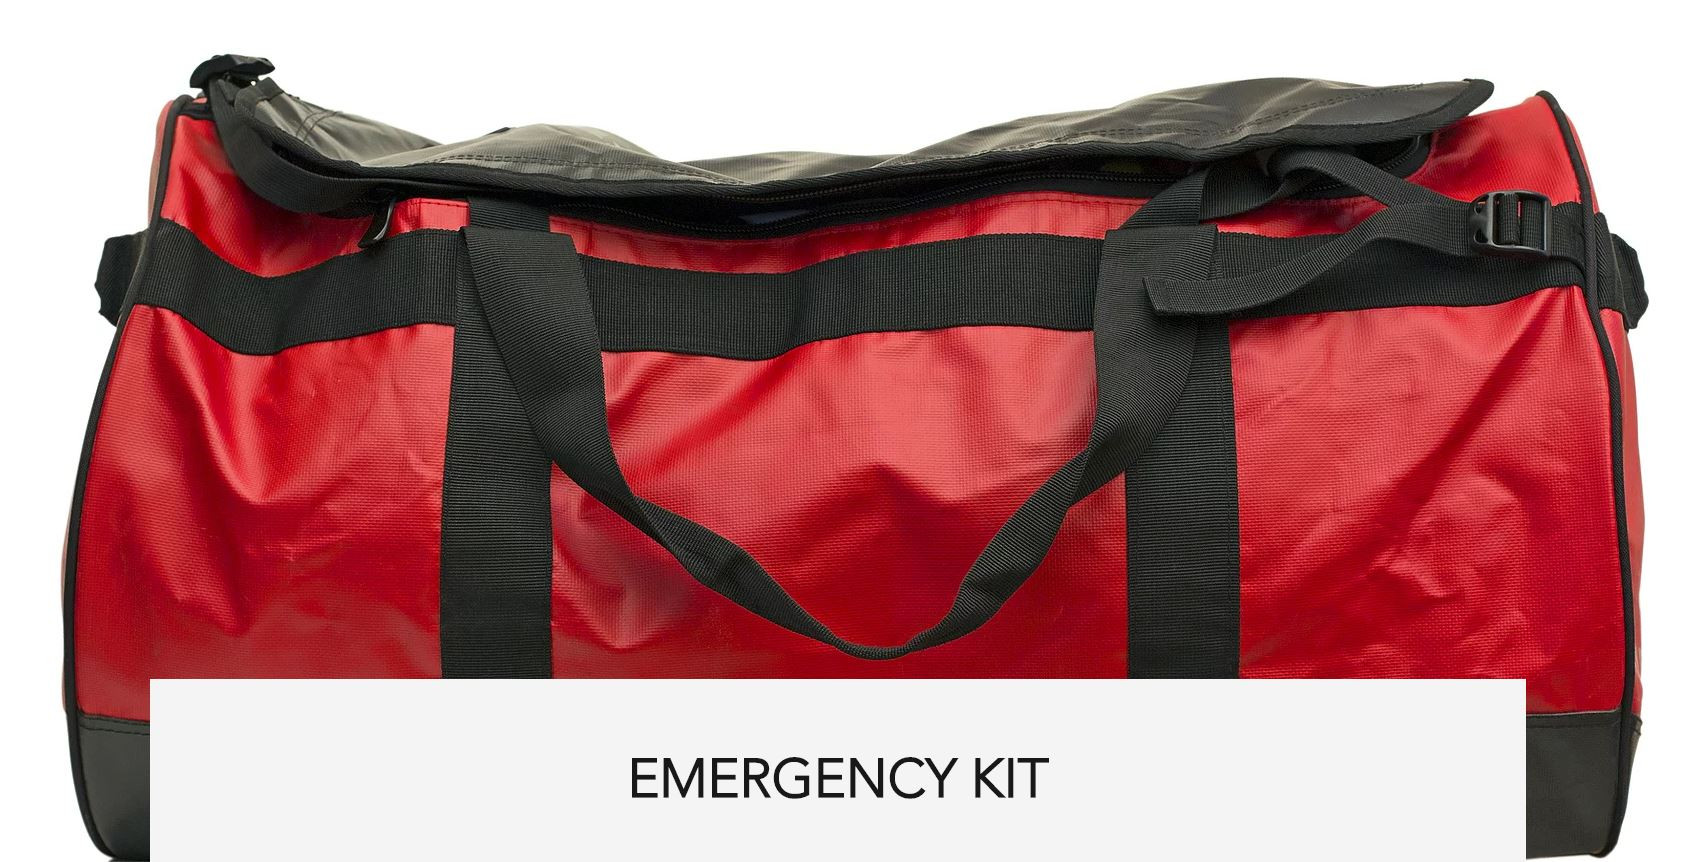 EMERGENCY KIT